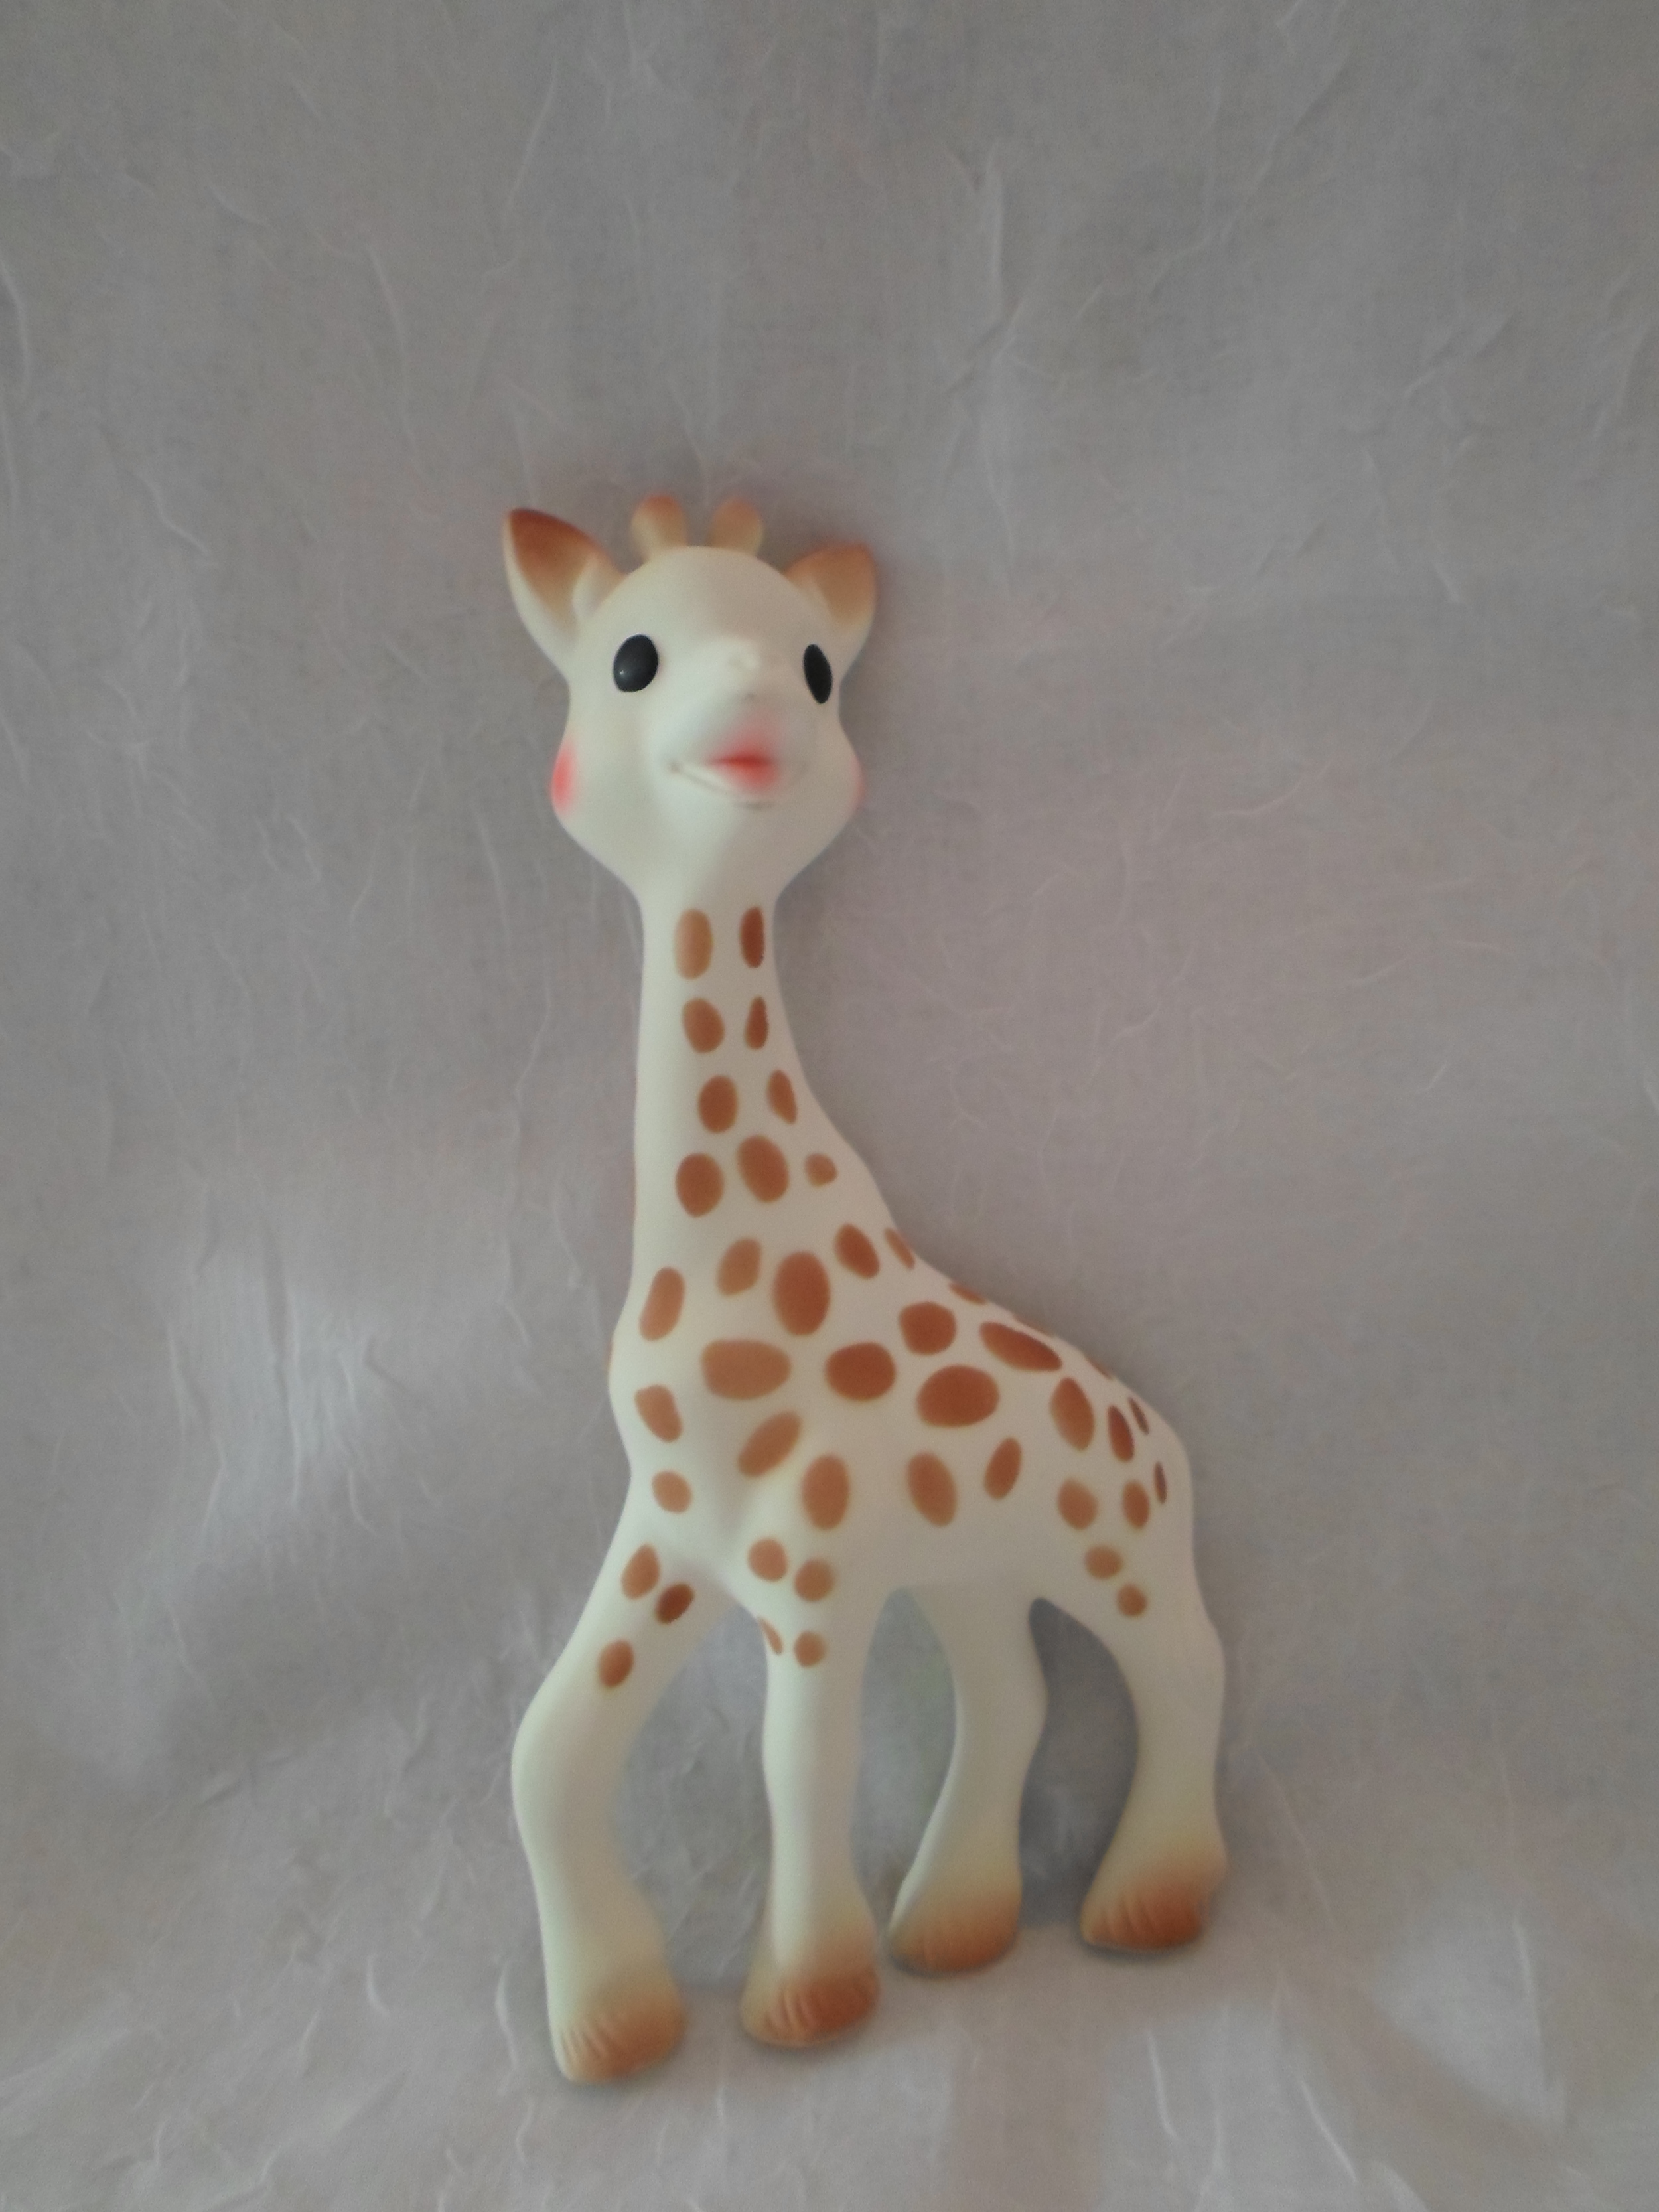 Sophie the Giraffe Natural Rubber Teething Toy    $25.95    Wants 1  PURCHASED